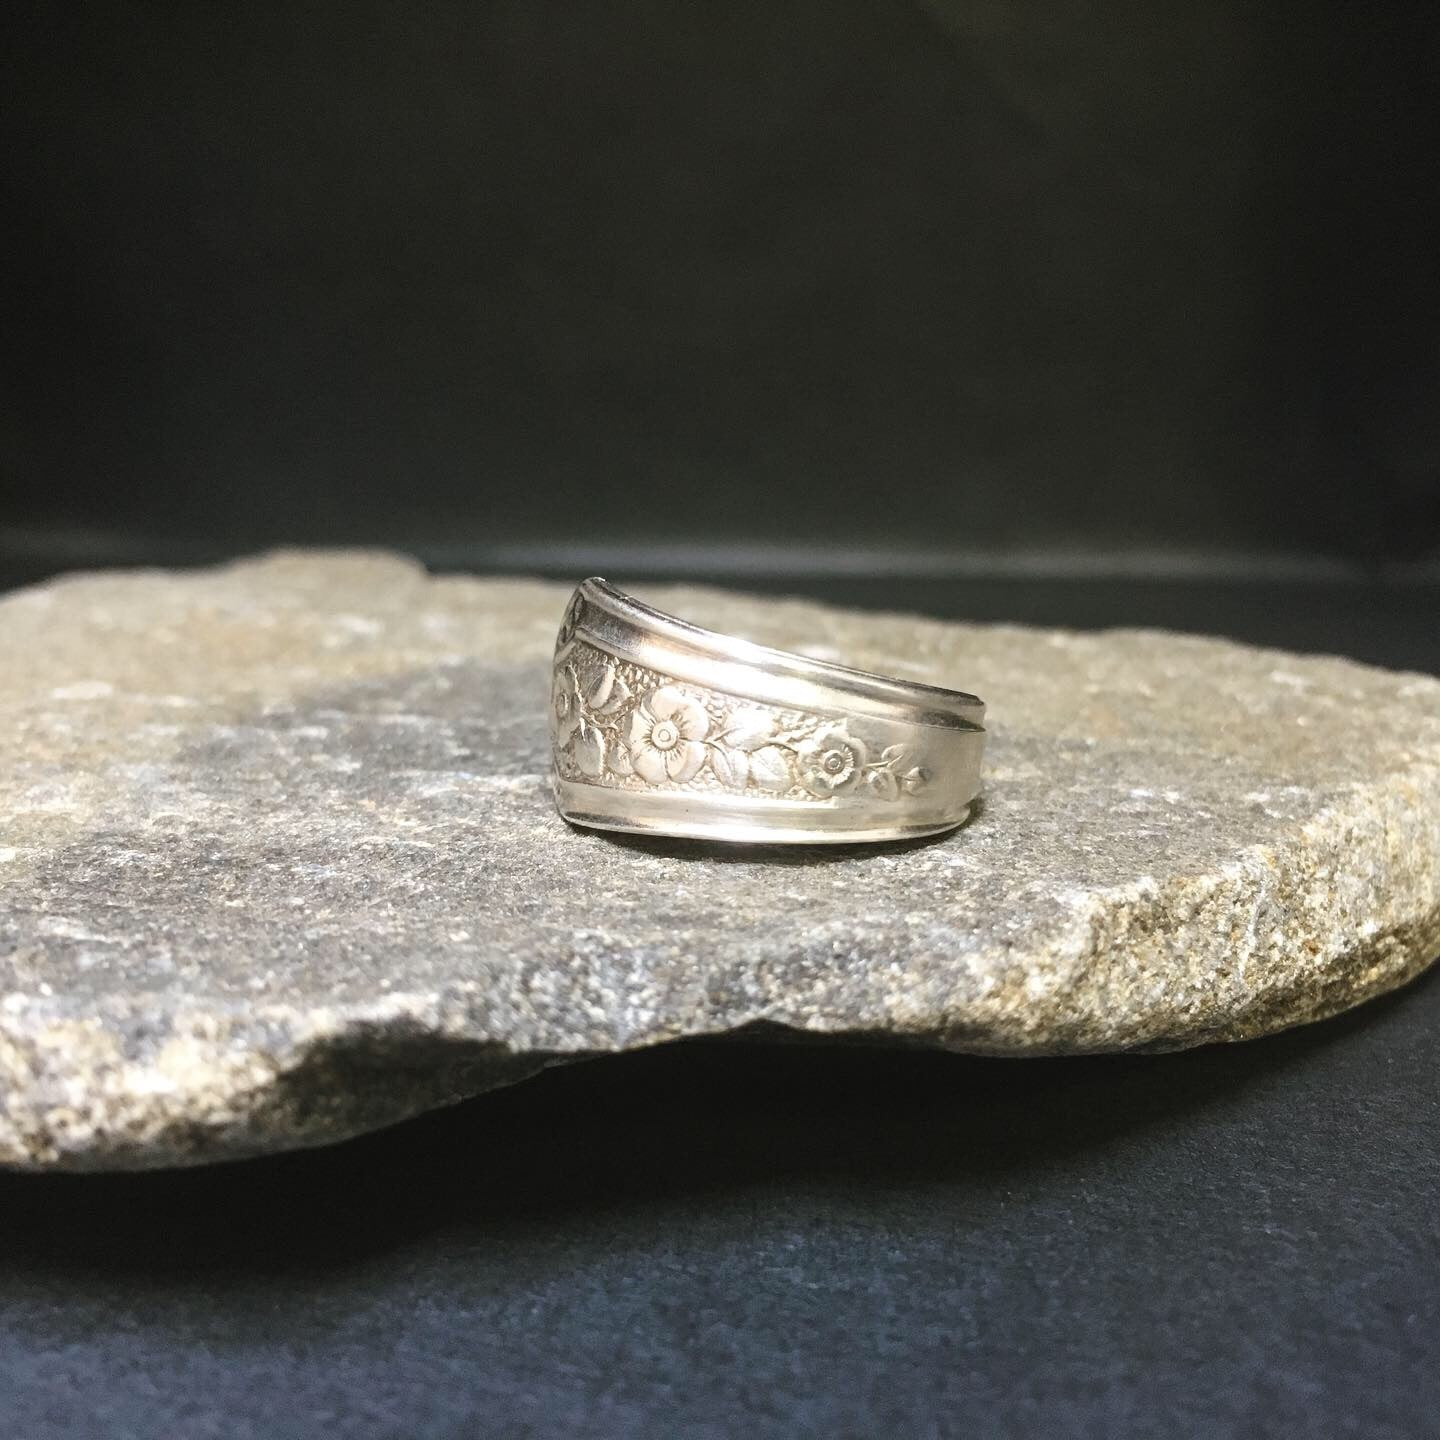 Ring handcrafted from vintage spoon